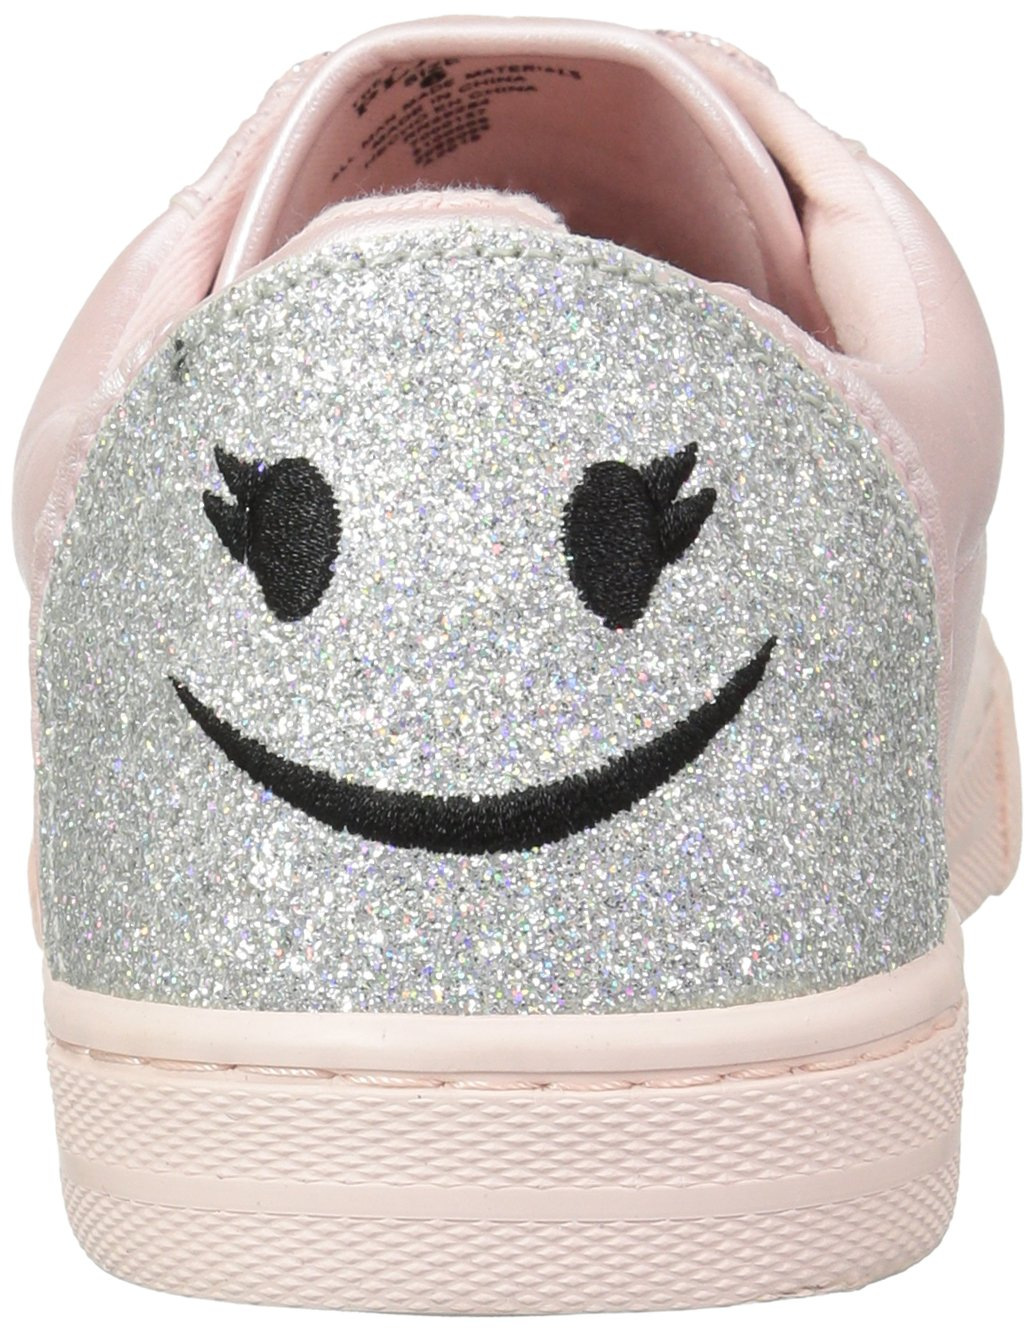 The Children's Place Girls' BG Emoji Sneaker, Pink, Youth 4 Medium US Big Kid by The Children's Place (Image #2)